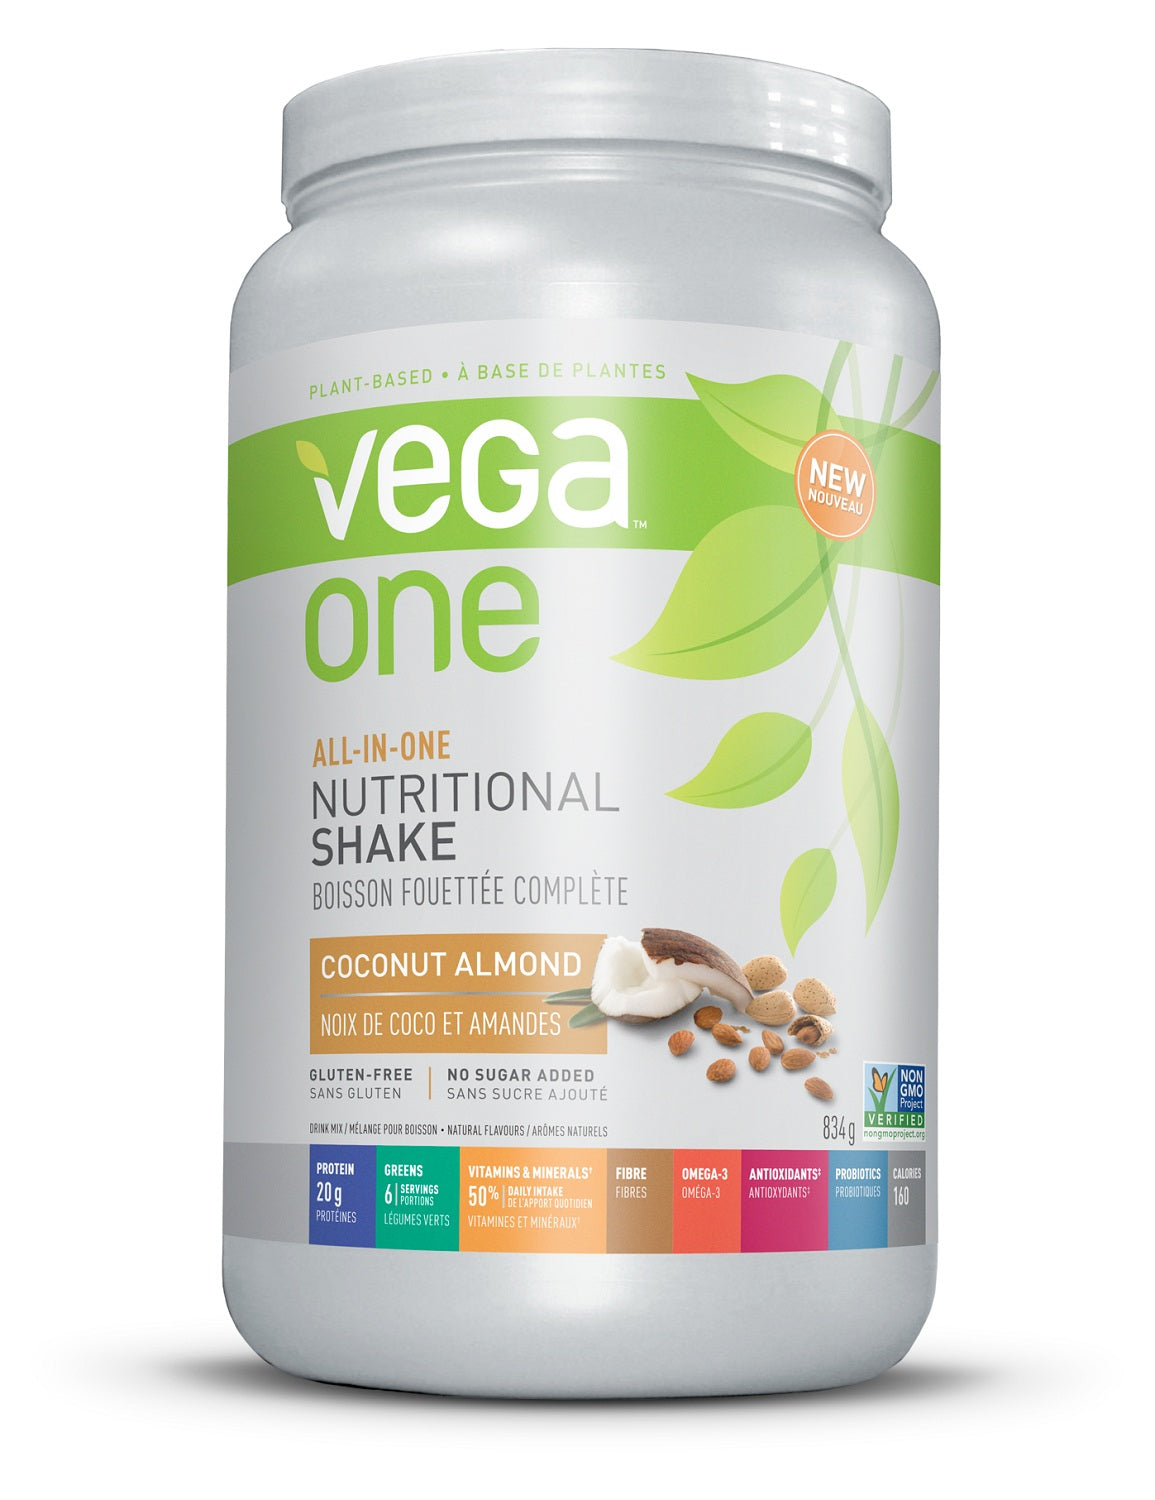 Supplements & Vitamins - Vega - Coconut Almond Nutrition Shake, 834g